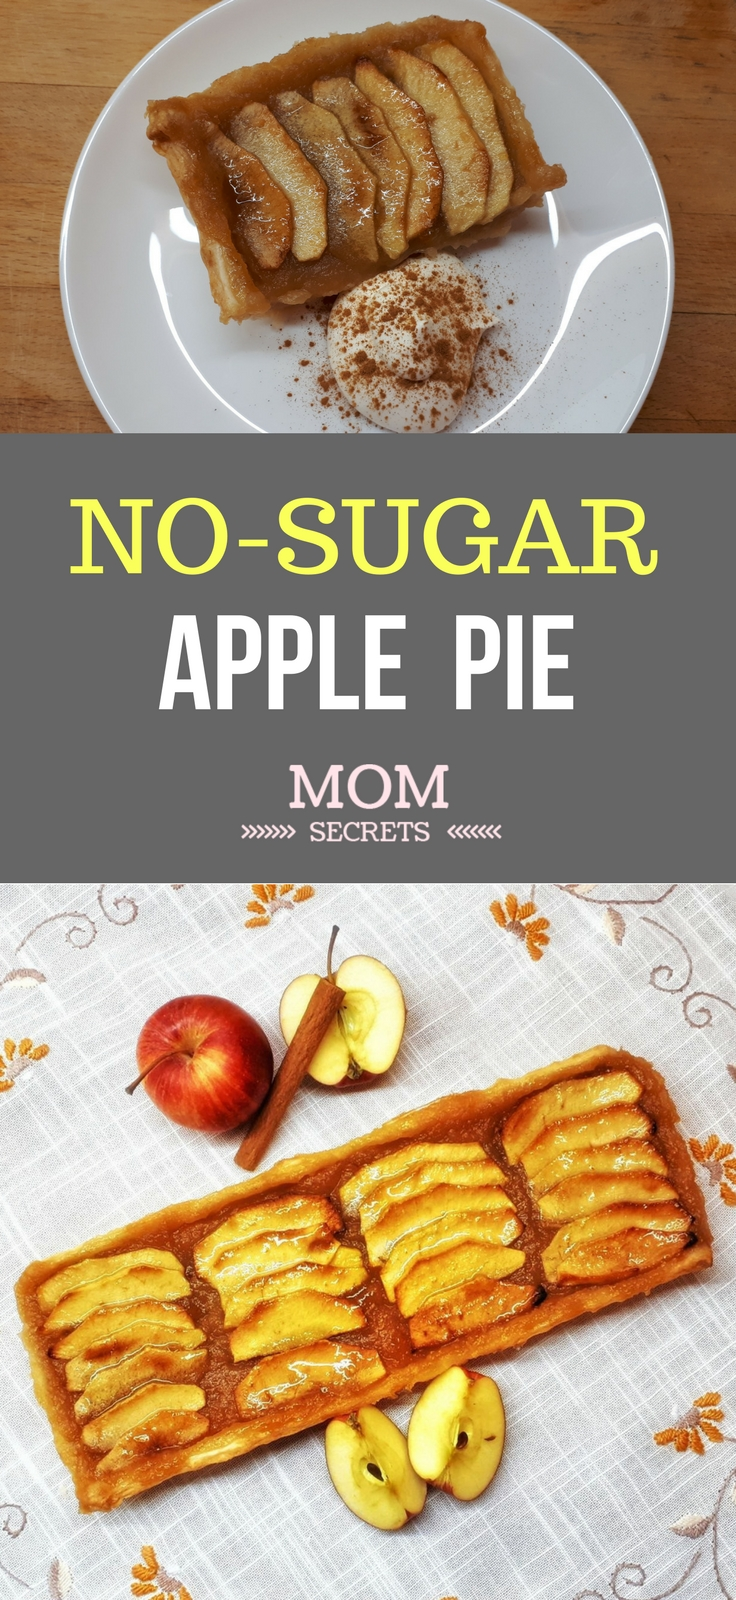 Easy homemade apple pie. It´s a healthy recipe - it has no sugar. The filling is made only with apples.